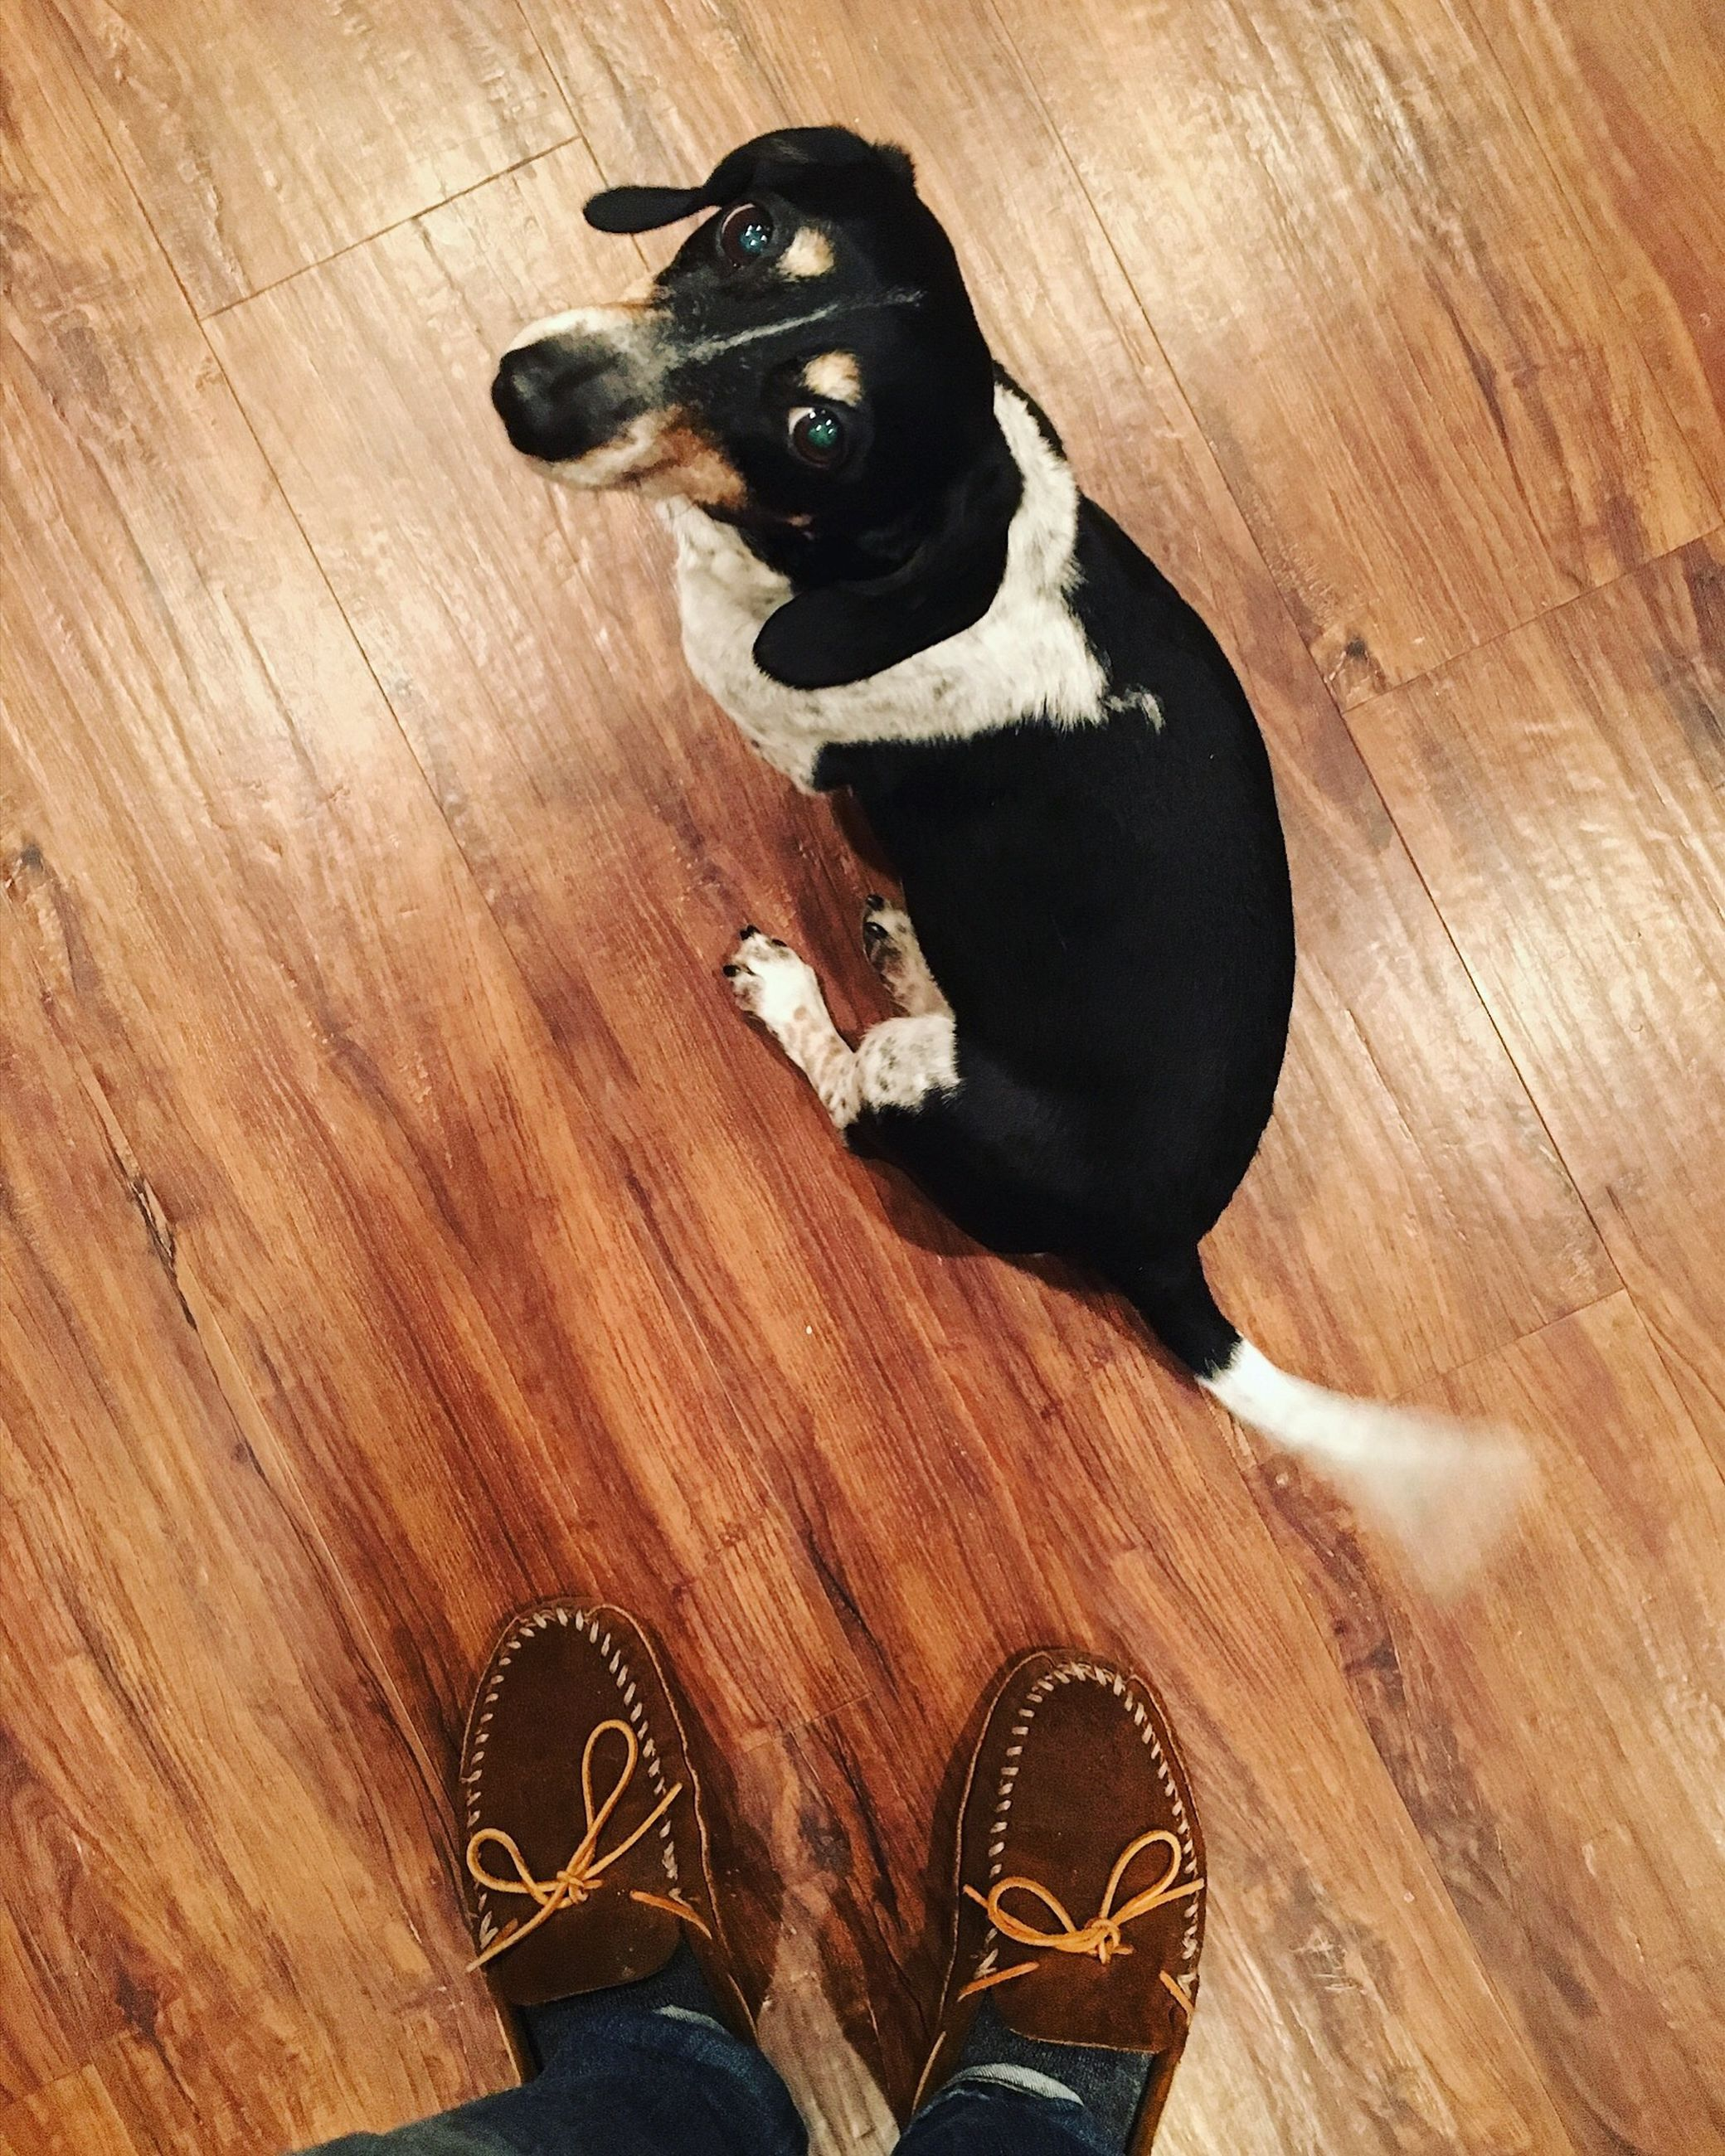 pets, domestic animals, dog, hardwood floor, one animal, animal themes, mammal, high angle view, indoors, sitting, shoe, black color, low section, human leg, wooden floor, standing, day, one person, close-up